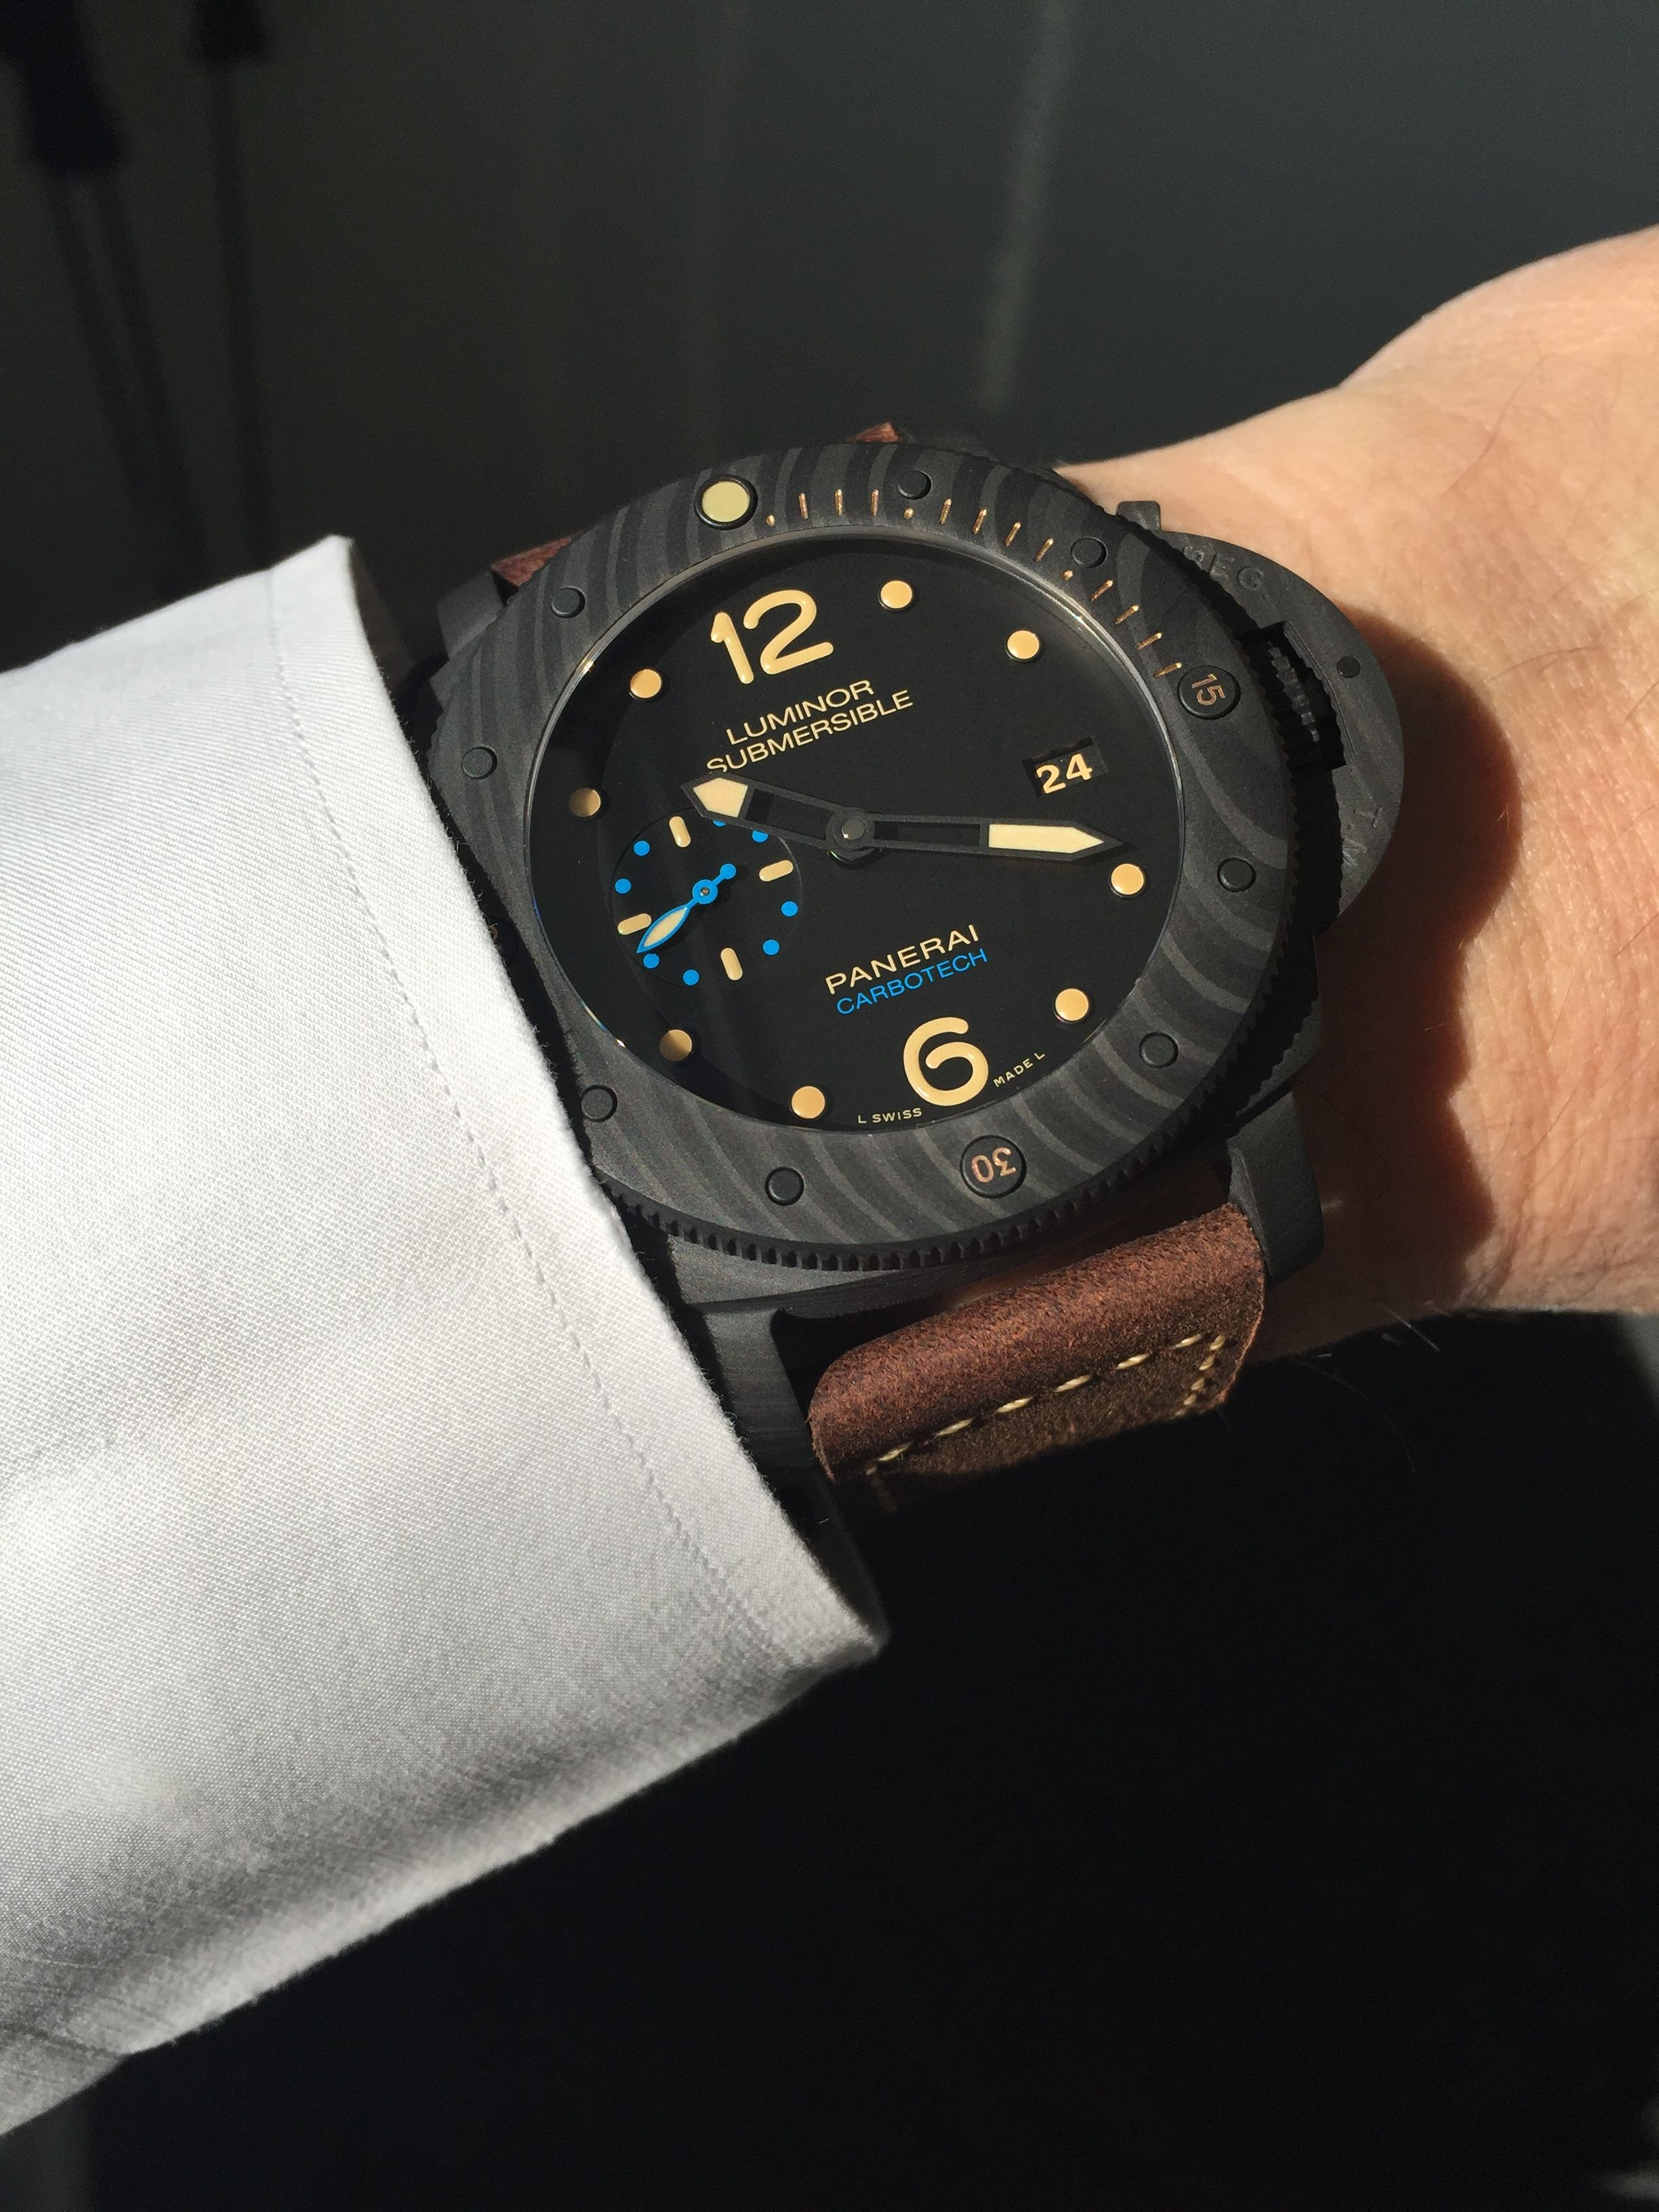 Panerai PAM 616 Carbotech Submersible, une merveille d'innovation...